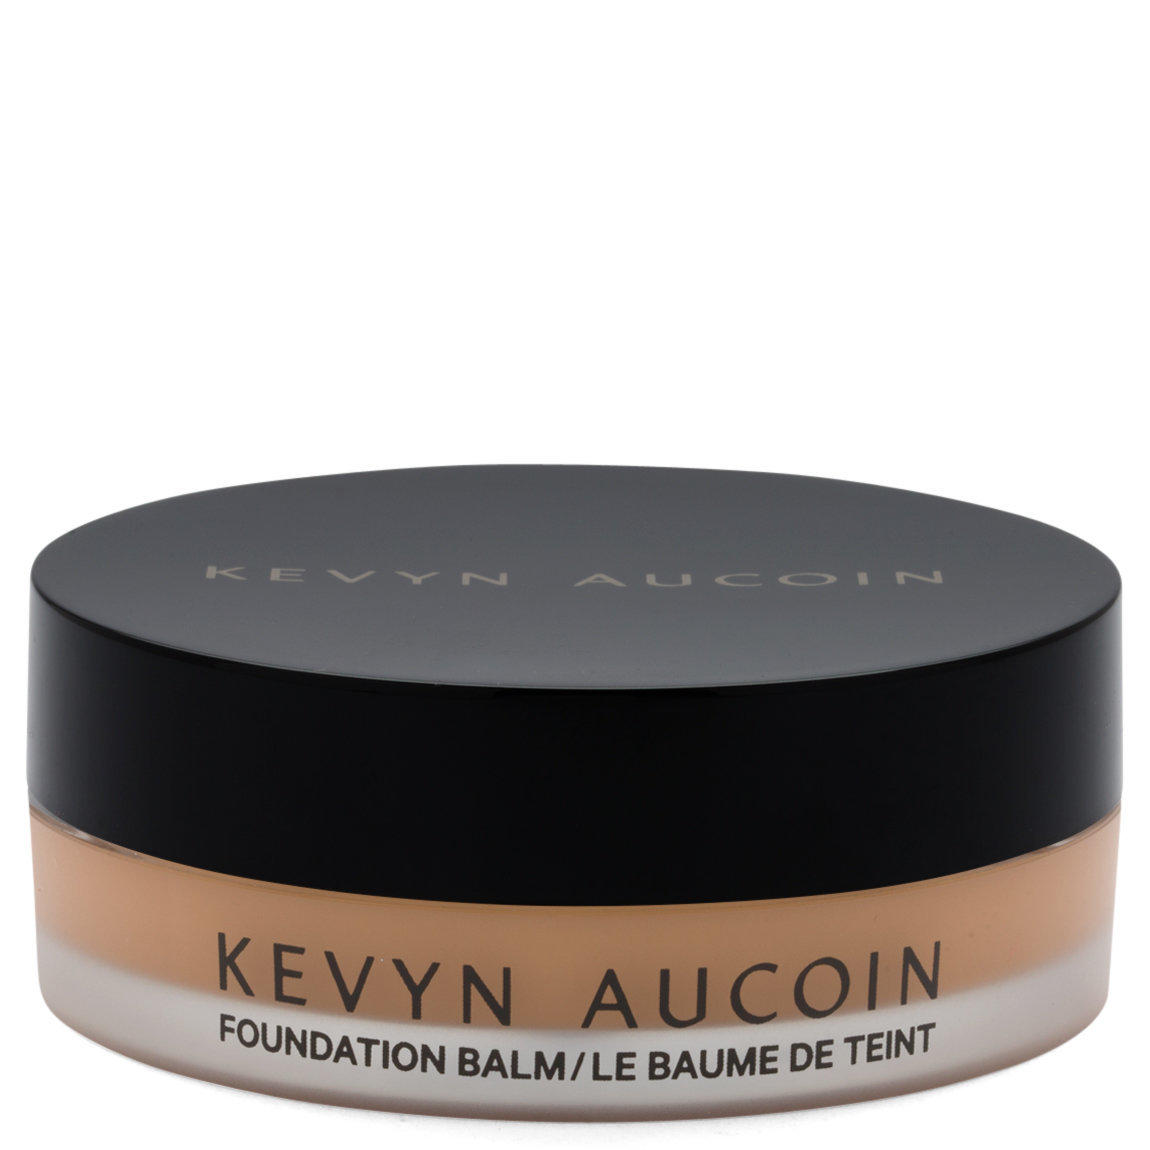 Kevyn Aucoin Foundation Balm Medium FB10